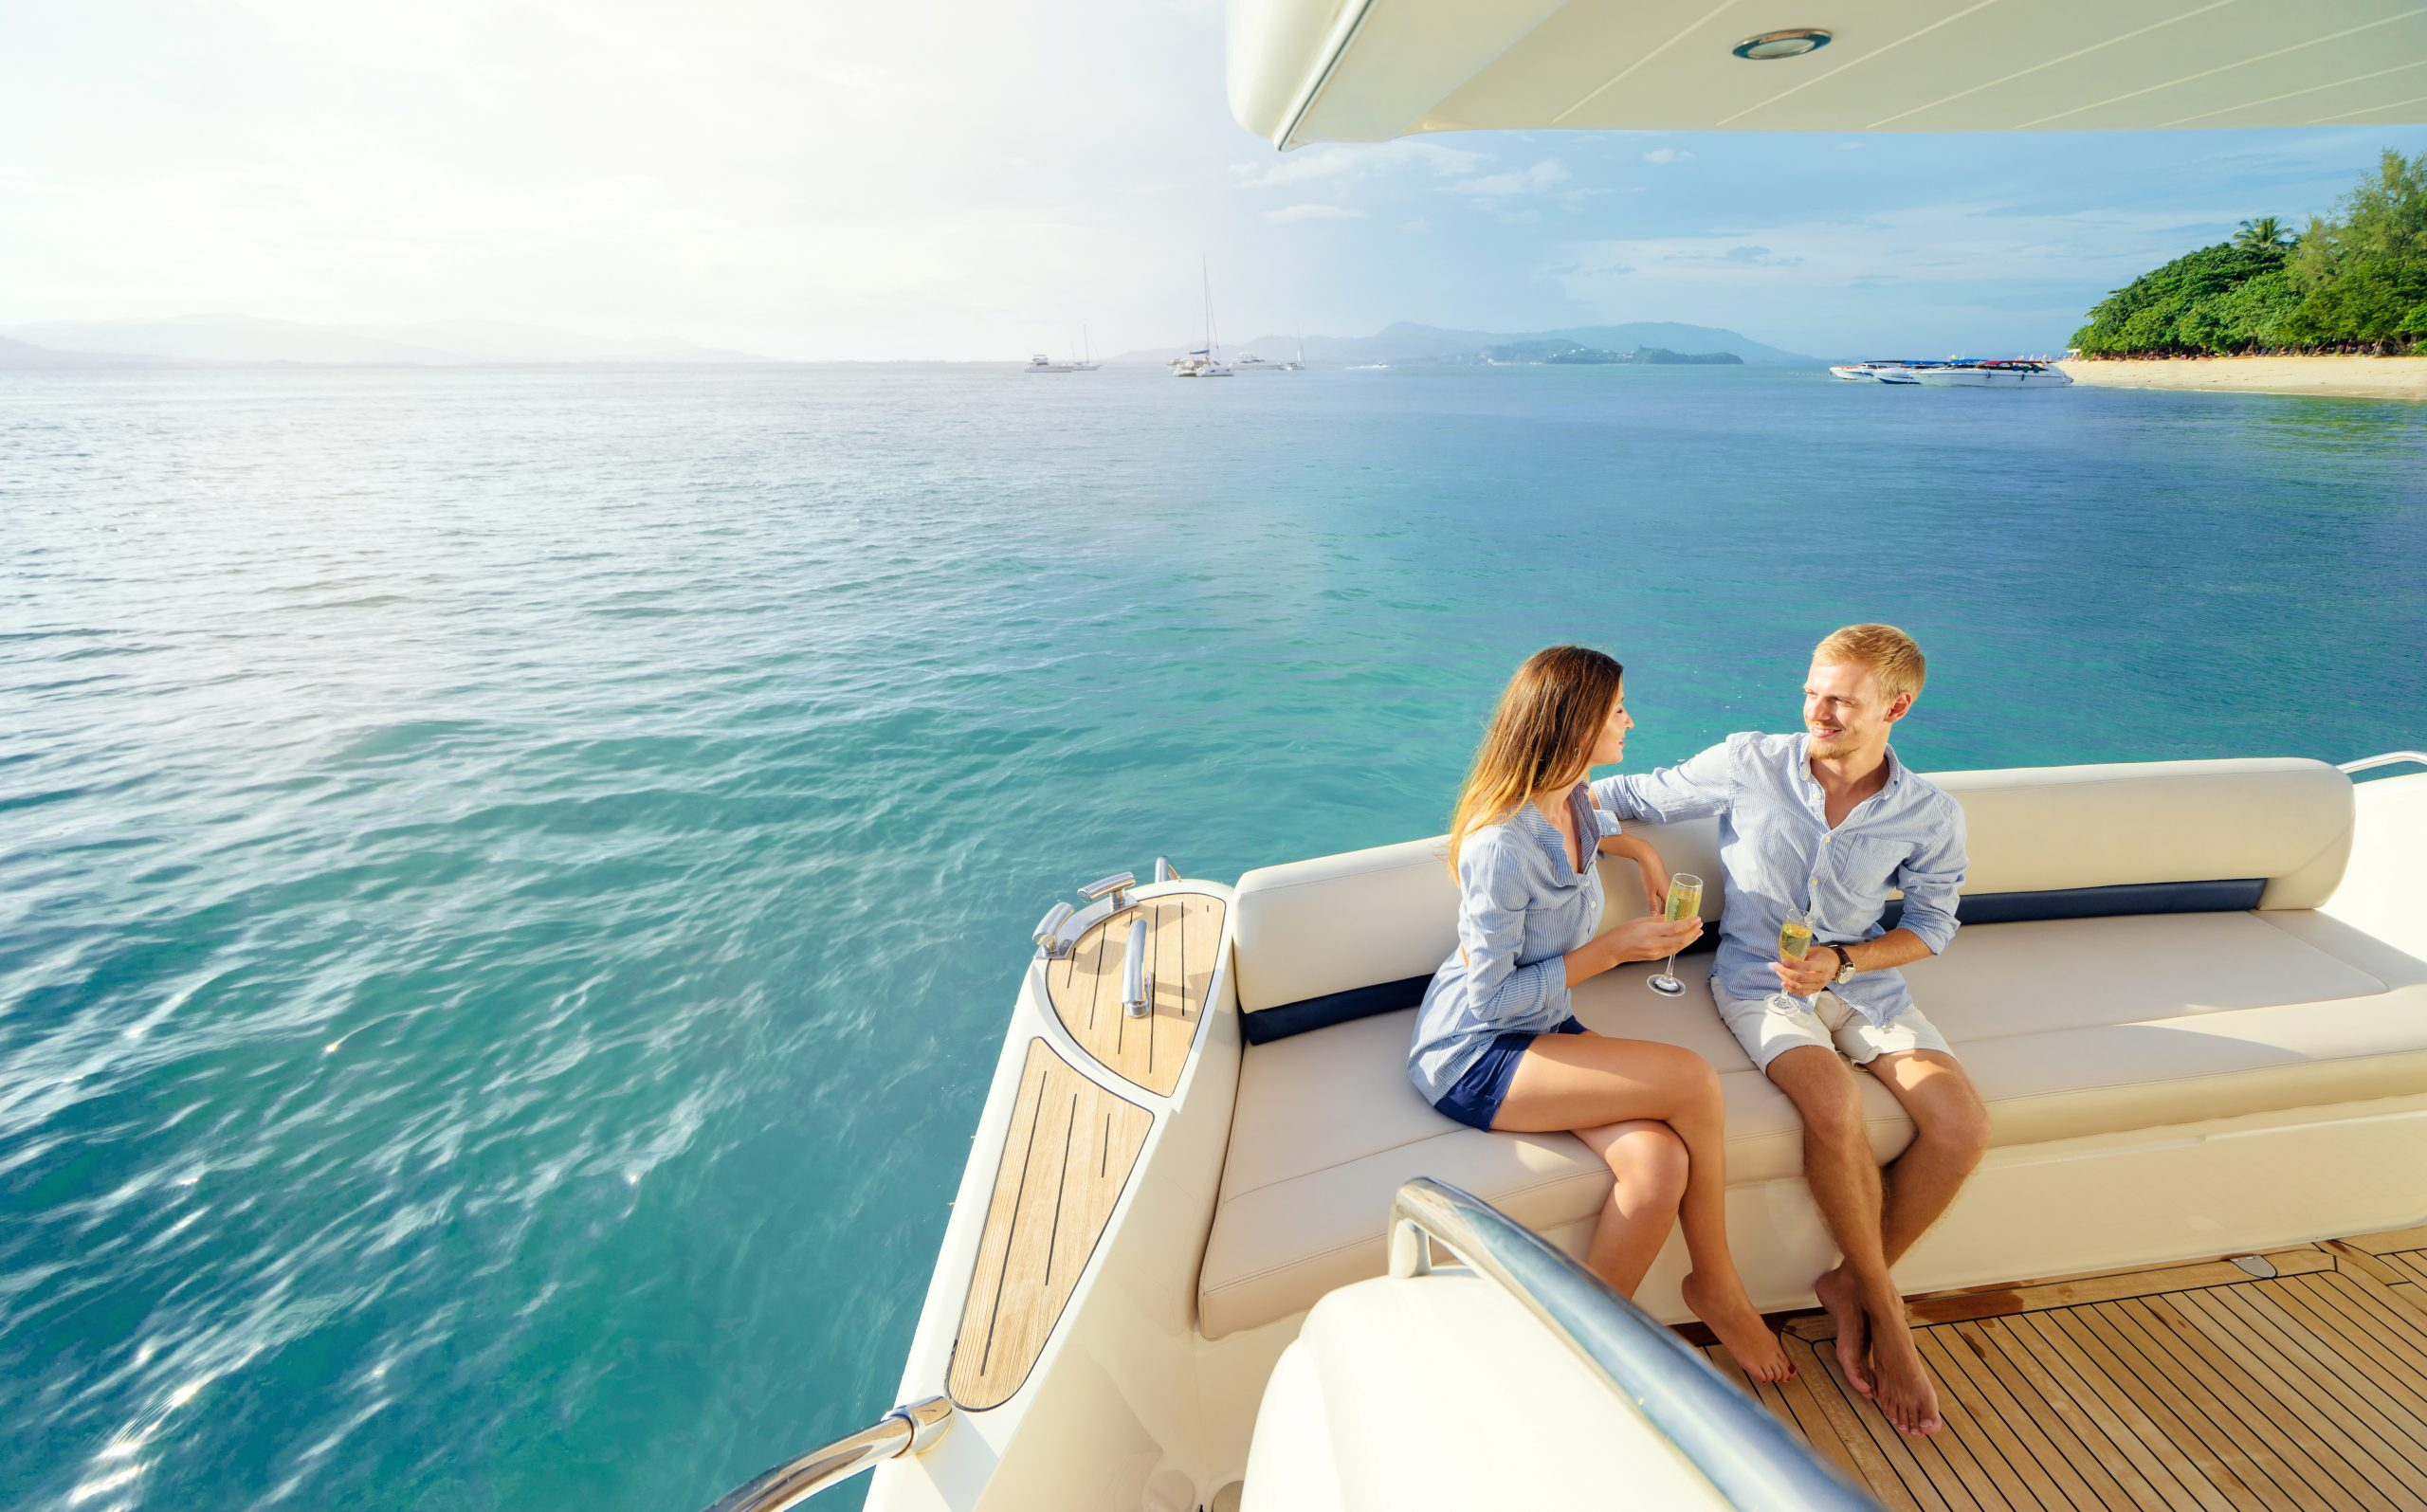 NEW TAX LAW CONTINUES TO SUBSTANTIALLY BENEFIT YACHT OWNERS